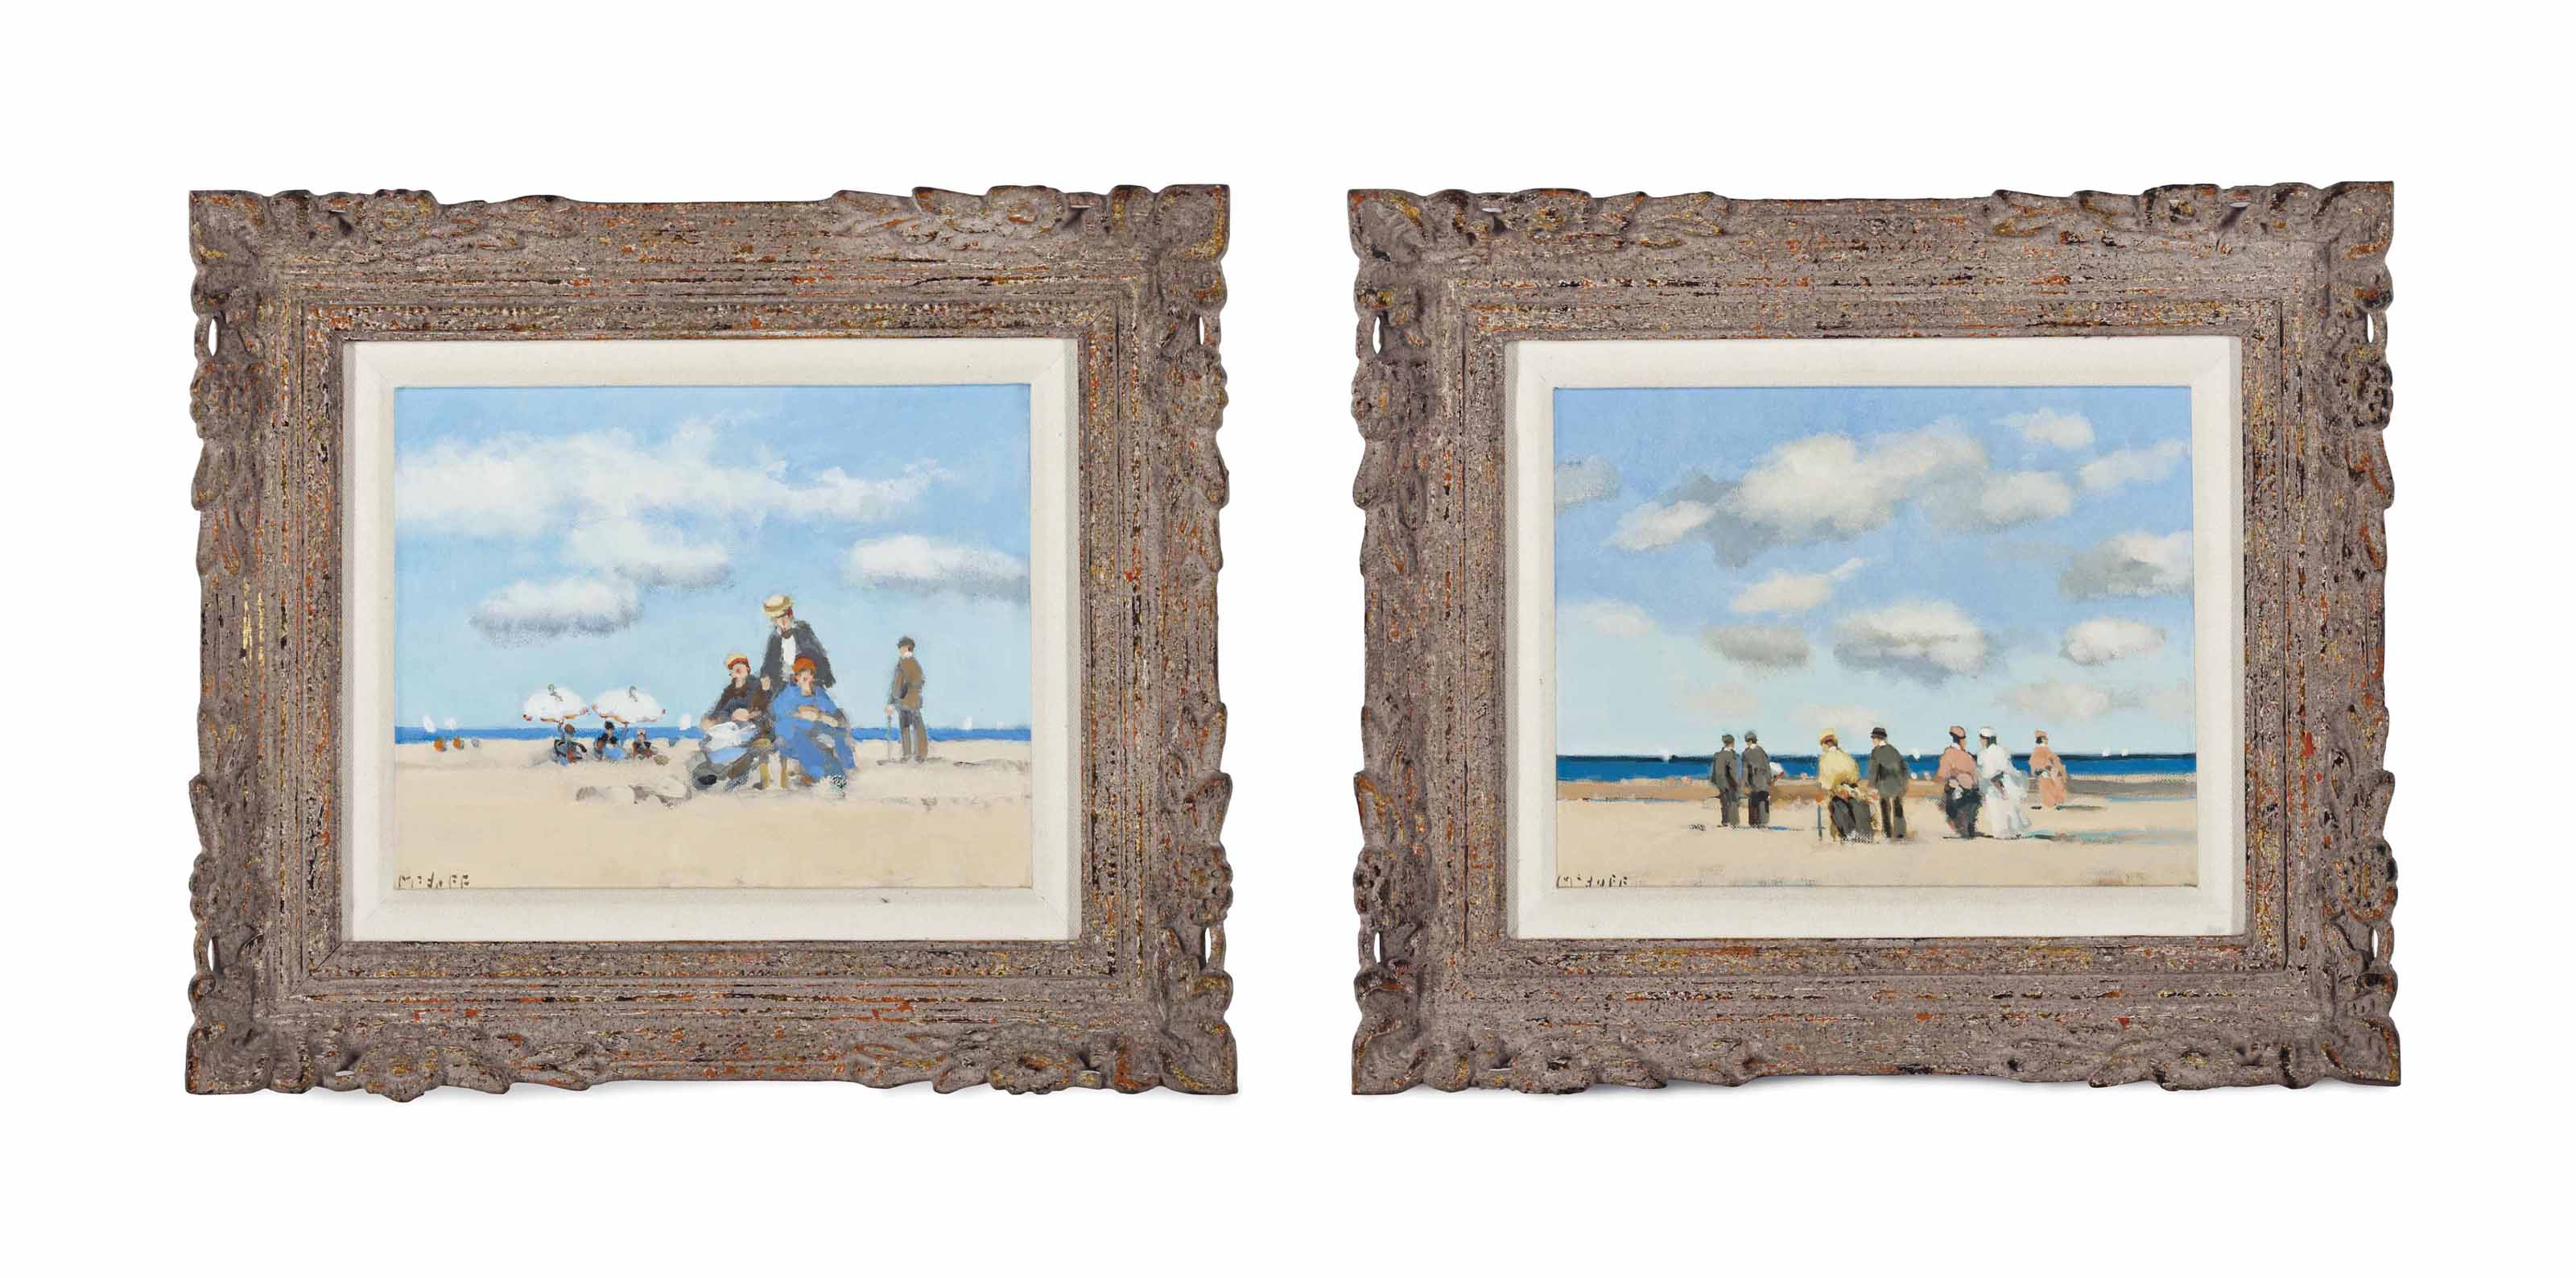 Figures on a Beach (two works)